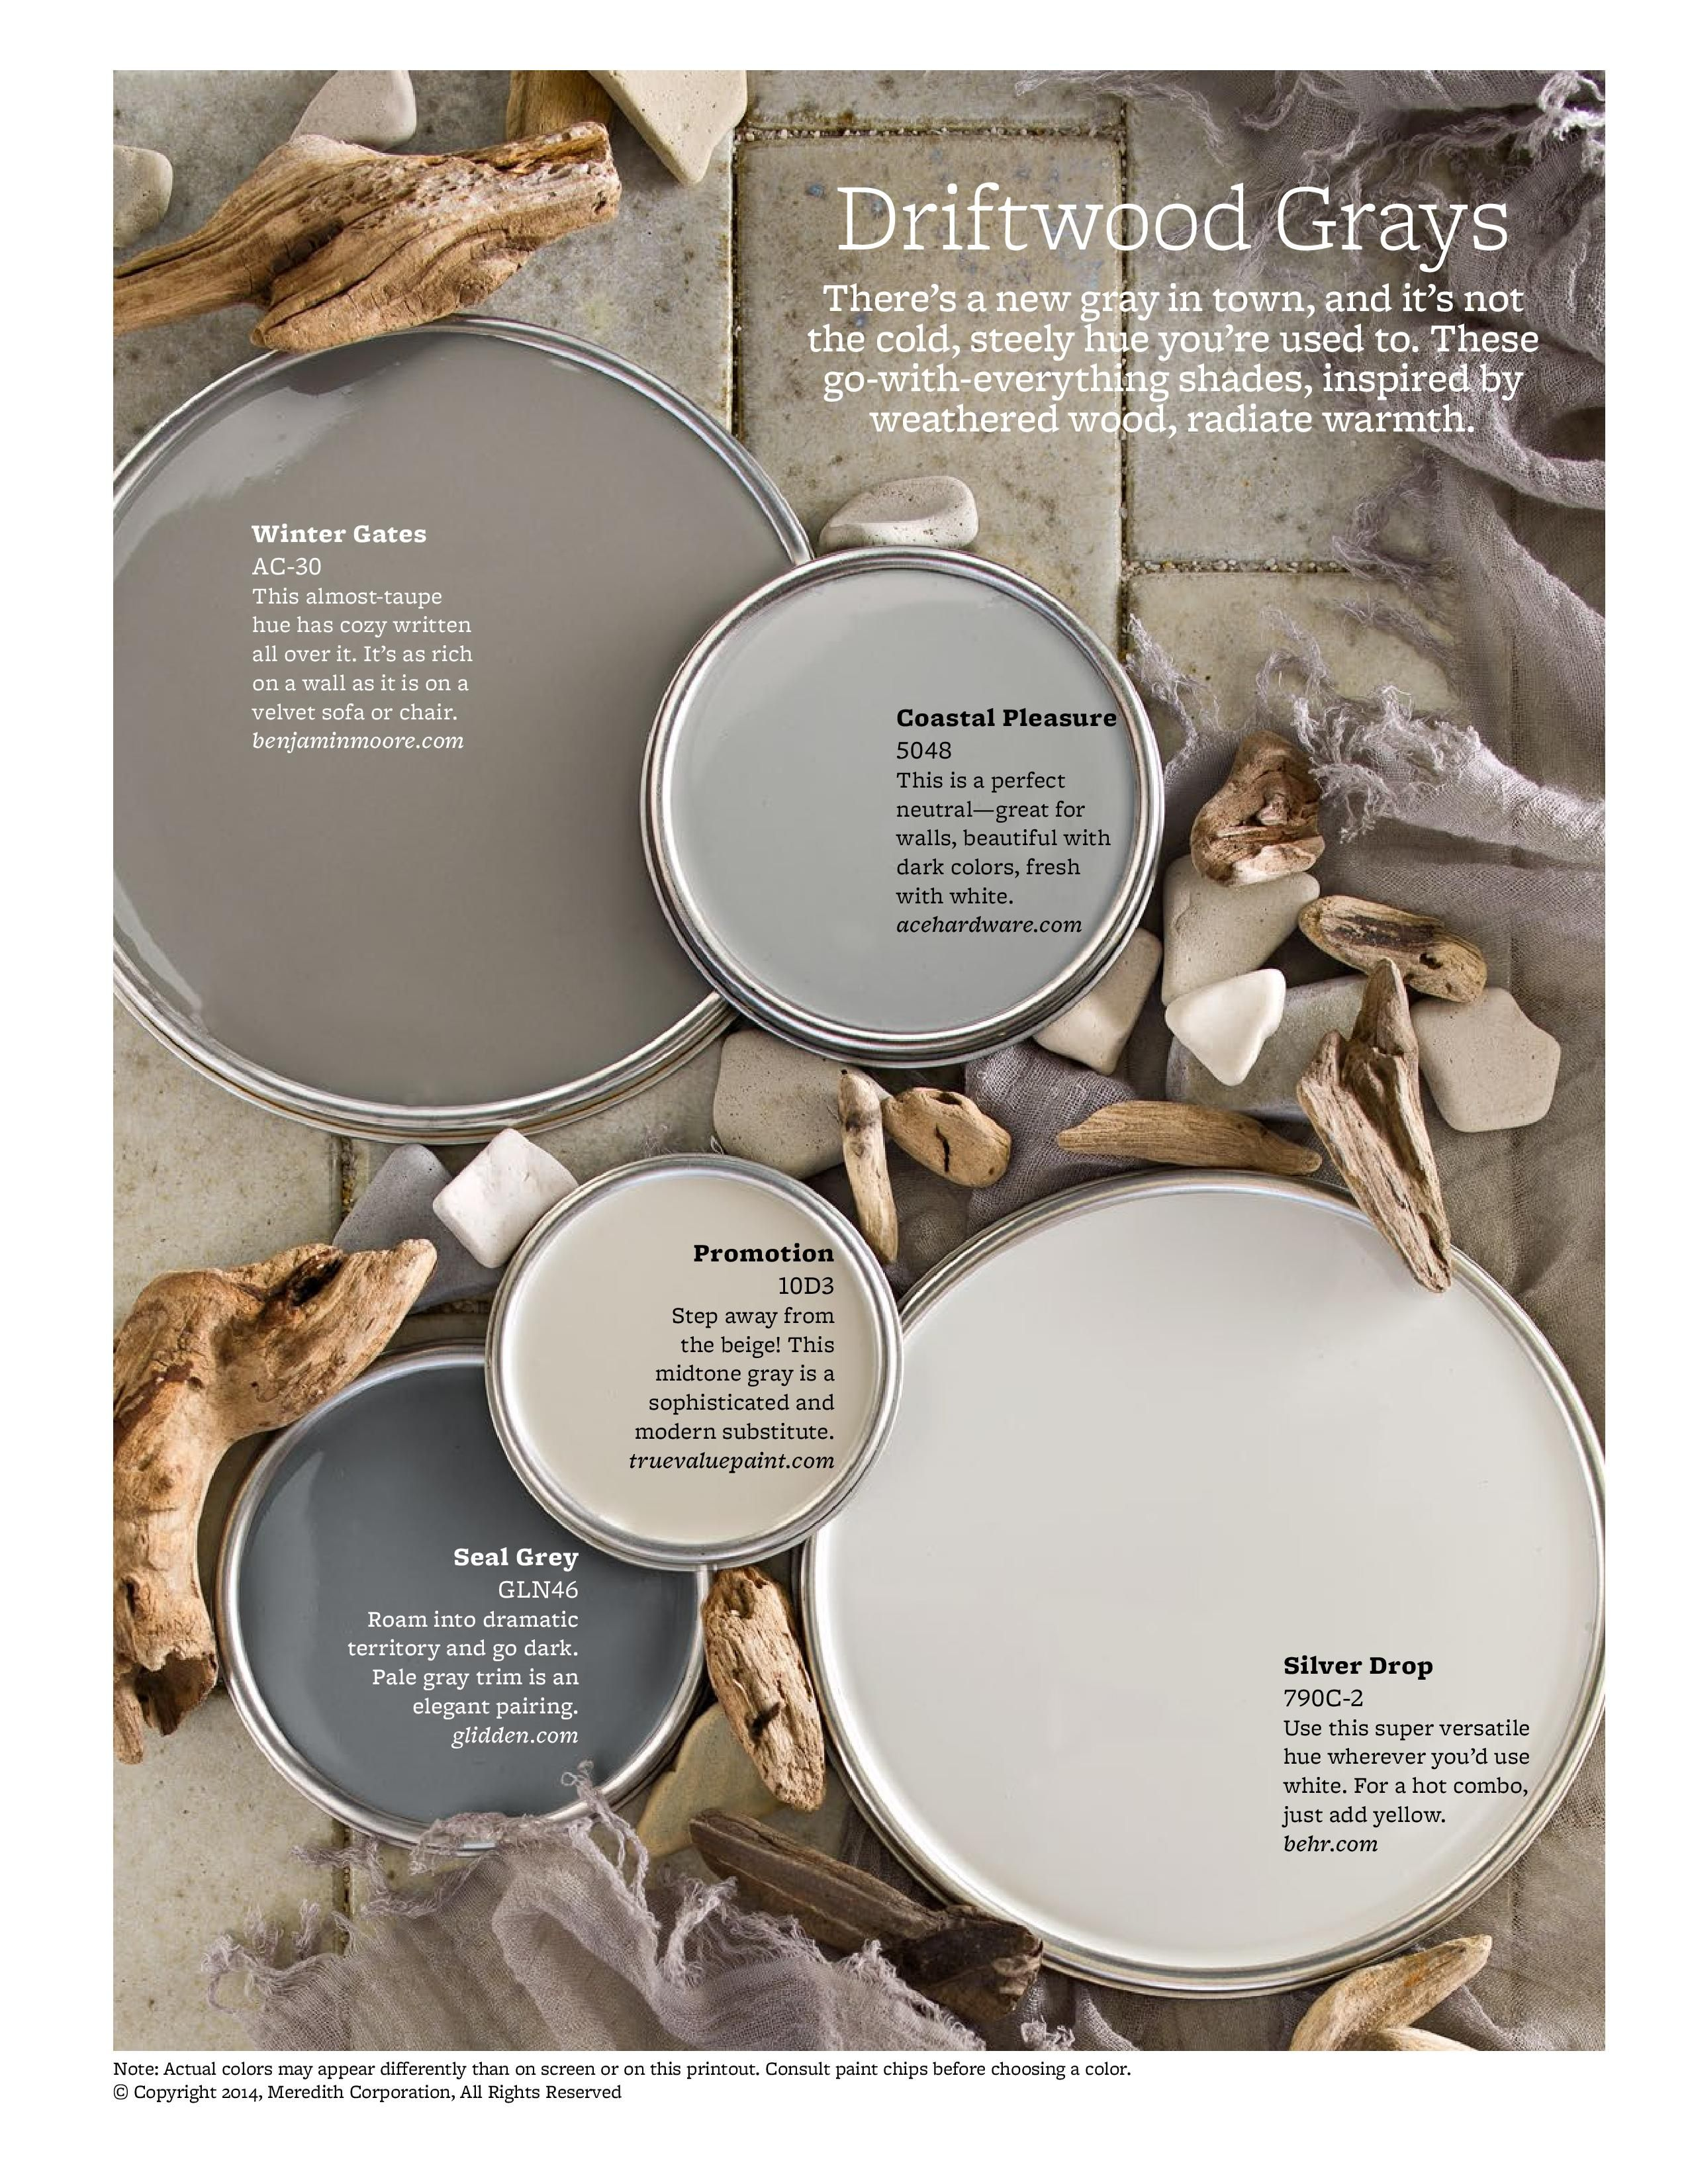 Sherwin Williams Alpaca Neutral Paint Color Scheme - Gray Warm Tones - Interior